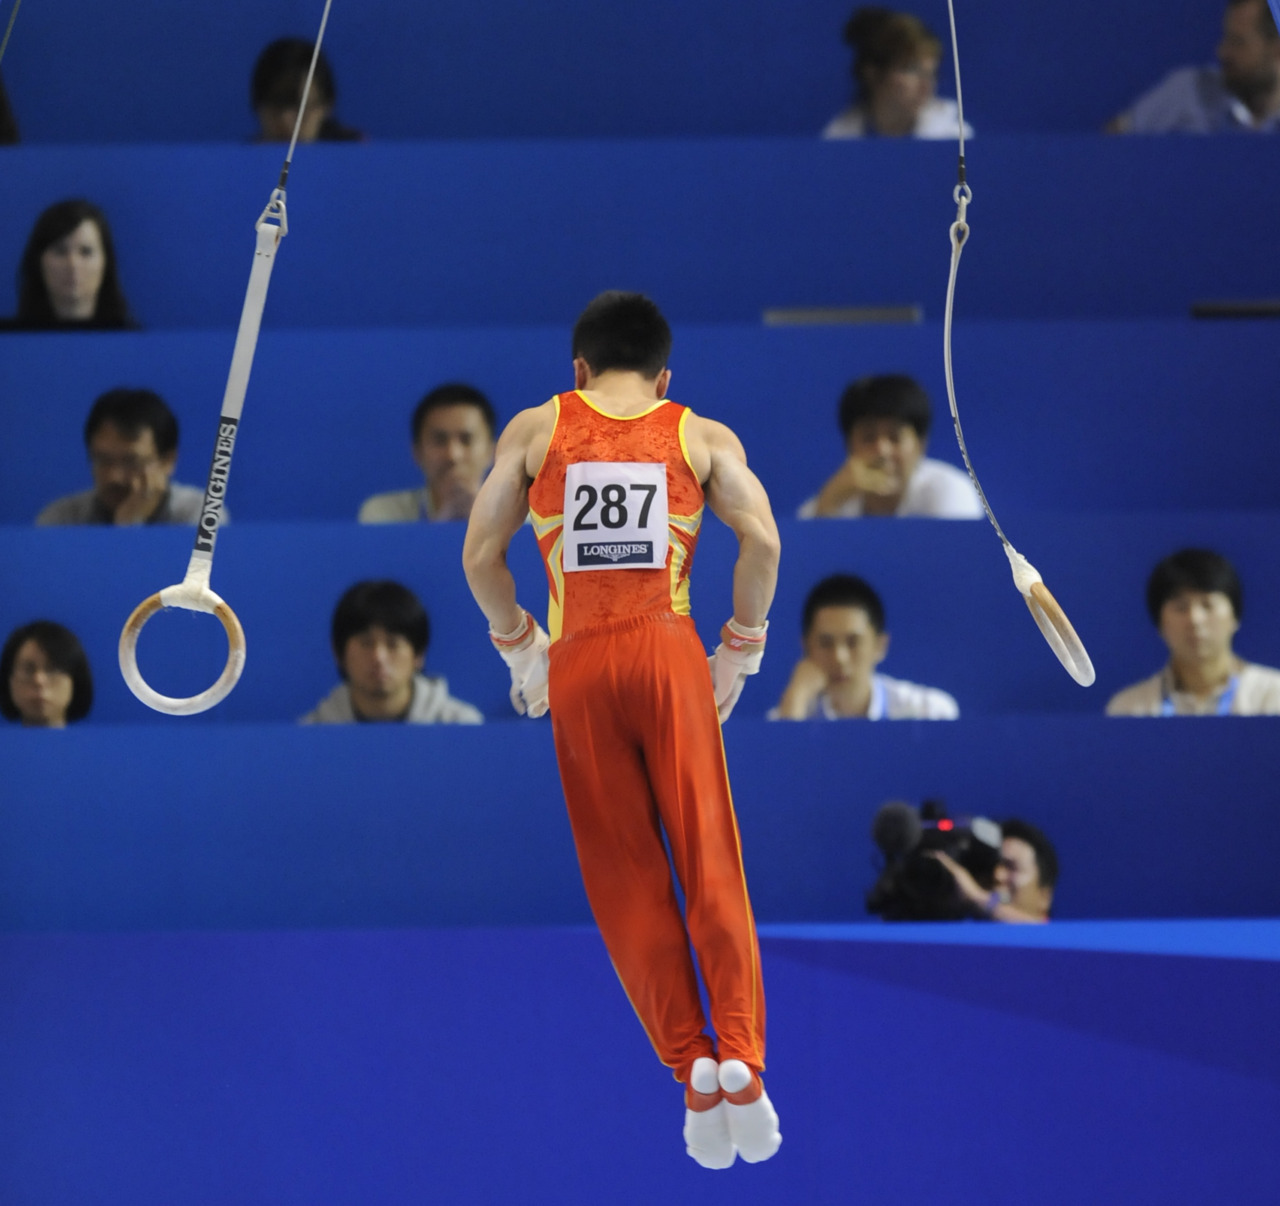 Guo Weiiyang of China performs on the rings during the men's team event of the qualification round at the World Gymnastics Championships in Tokyo on October 10, 2011. The eight top-scoring teams from the qualifying round will advance to the men's team finals on October 12.  Photo: Kazuhiro Nogi/AFP/Getty Images